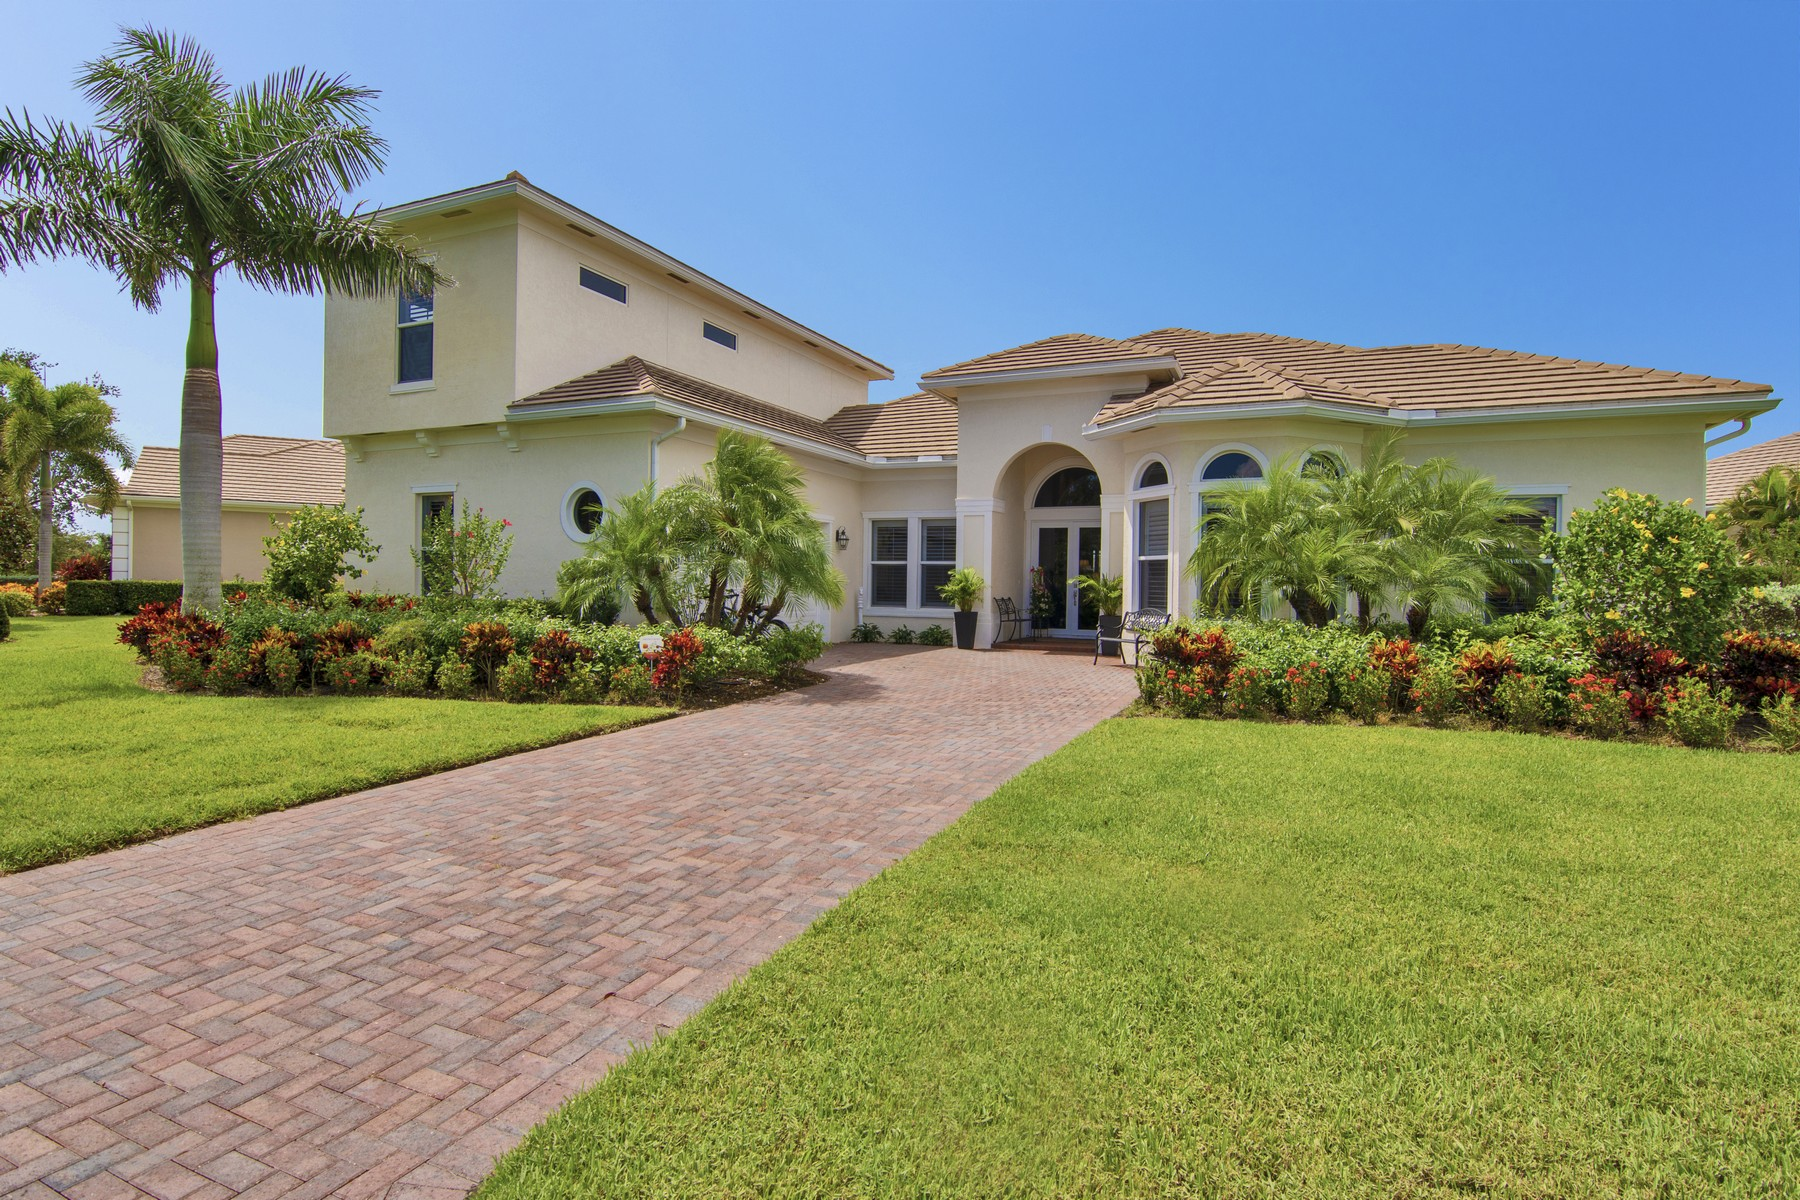 Single Family Home for Sale at Bright and Spacious Five Bedroom Home With Stunning Lake Views 1070 Riverwind Circle Vero Beach, Florida 32967 United States